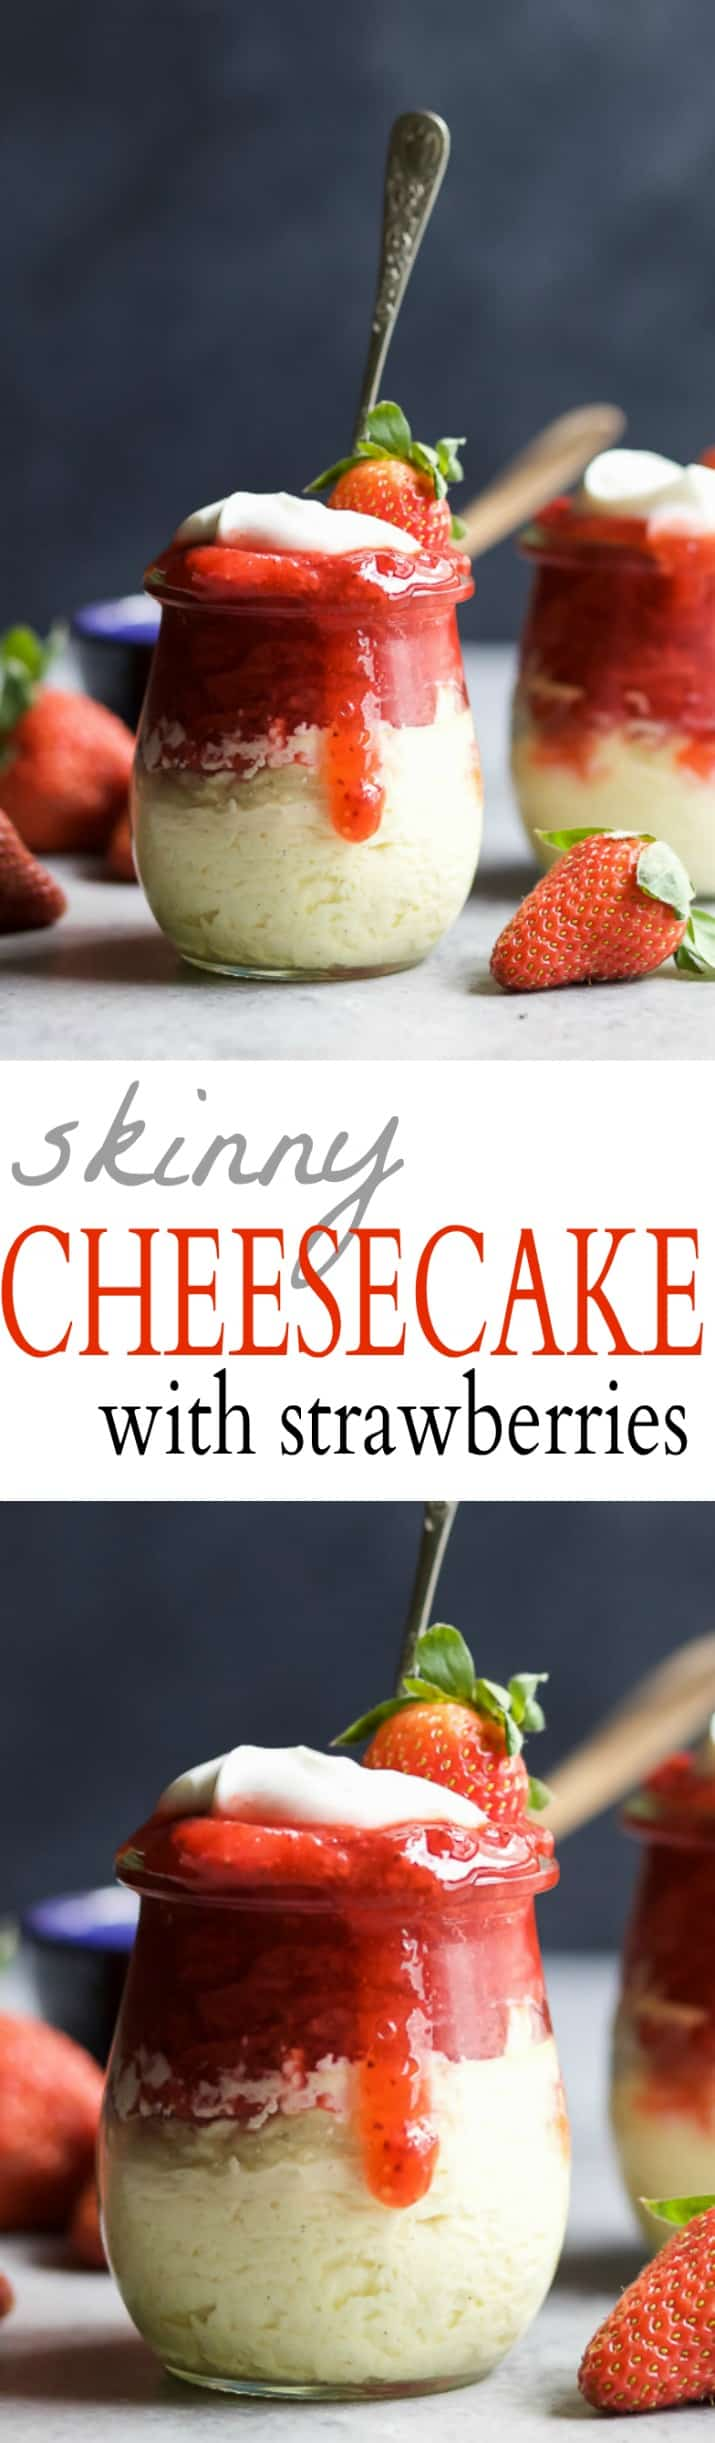 SKINNY CHEESECAKE for two made with greek yogurt and topped with fresh strawberries slightly sweetened with honey. The perfect healthy sweet dessert for those late night cravings!   joyfulhealthyeats.com